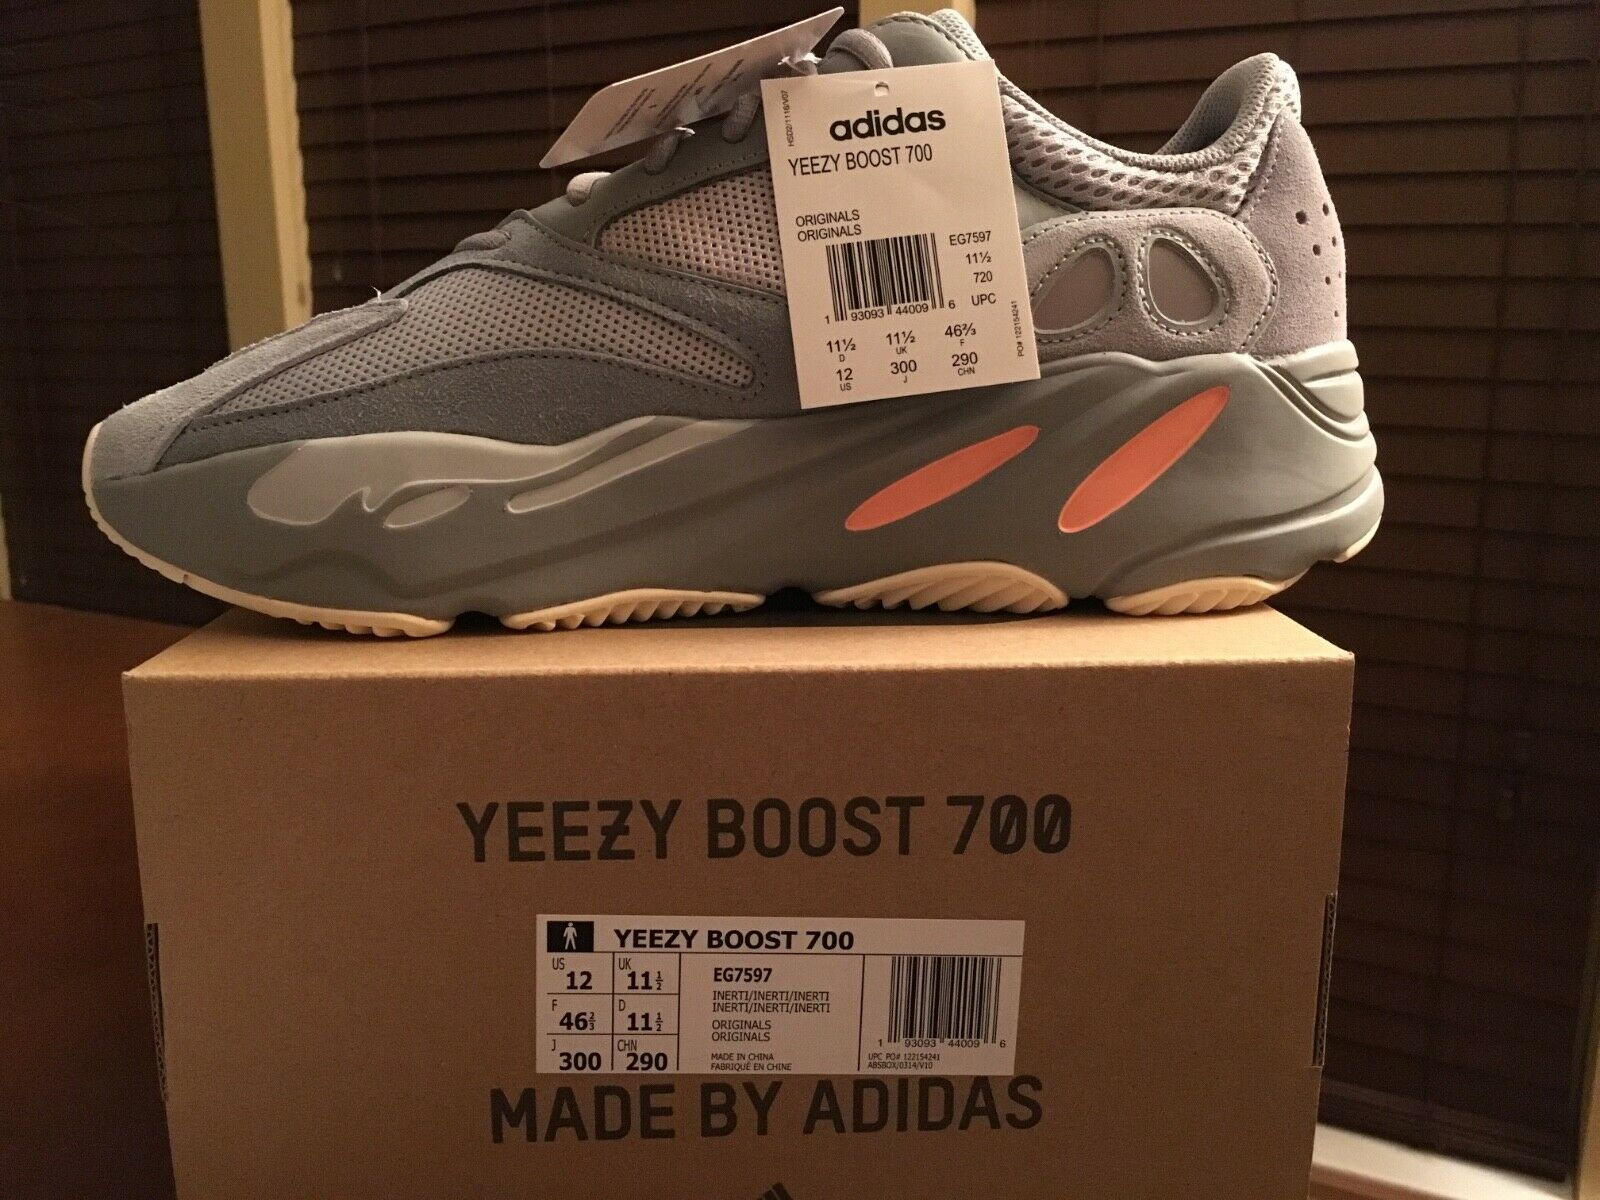 Adidas Yeezy Boost 700 Inertia Size 12 New in Box